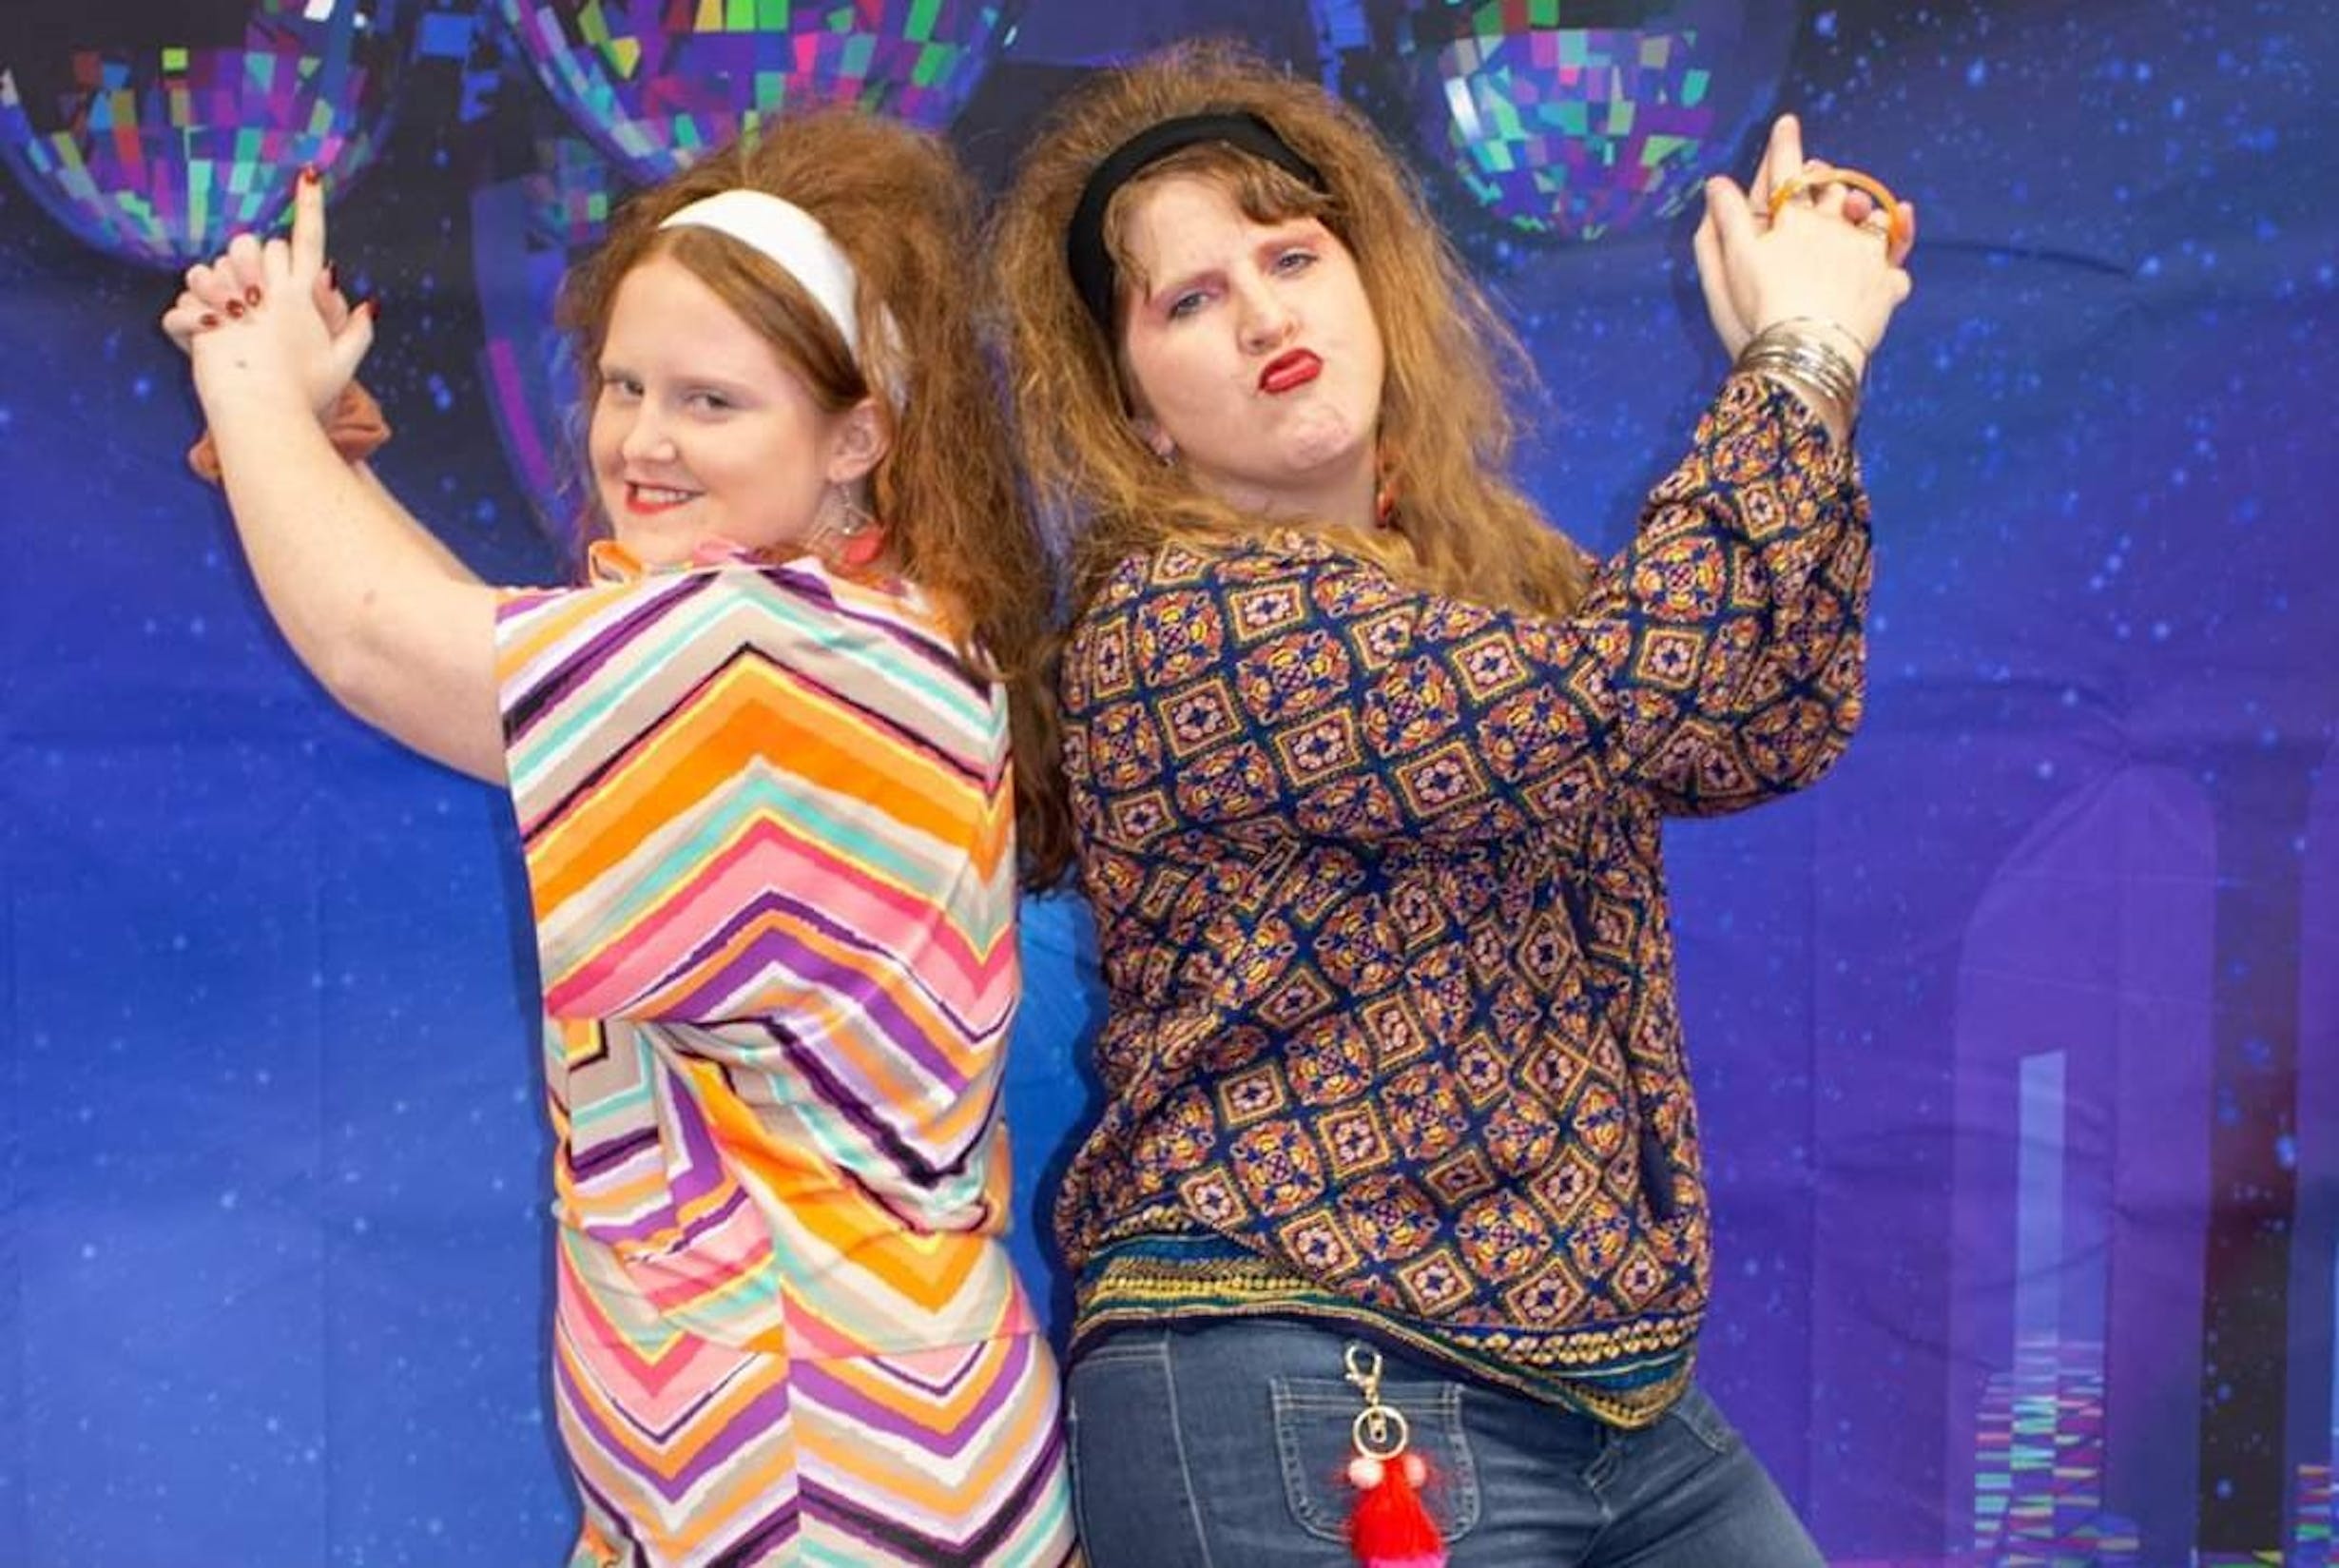 Two female students perform a Charlie's Angels pose at a school 70's themed dance